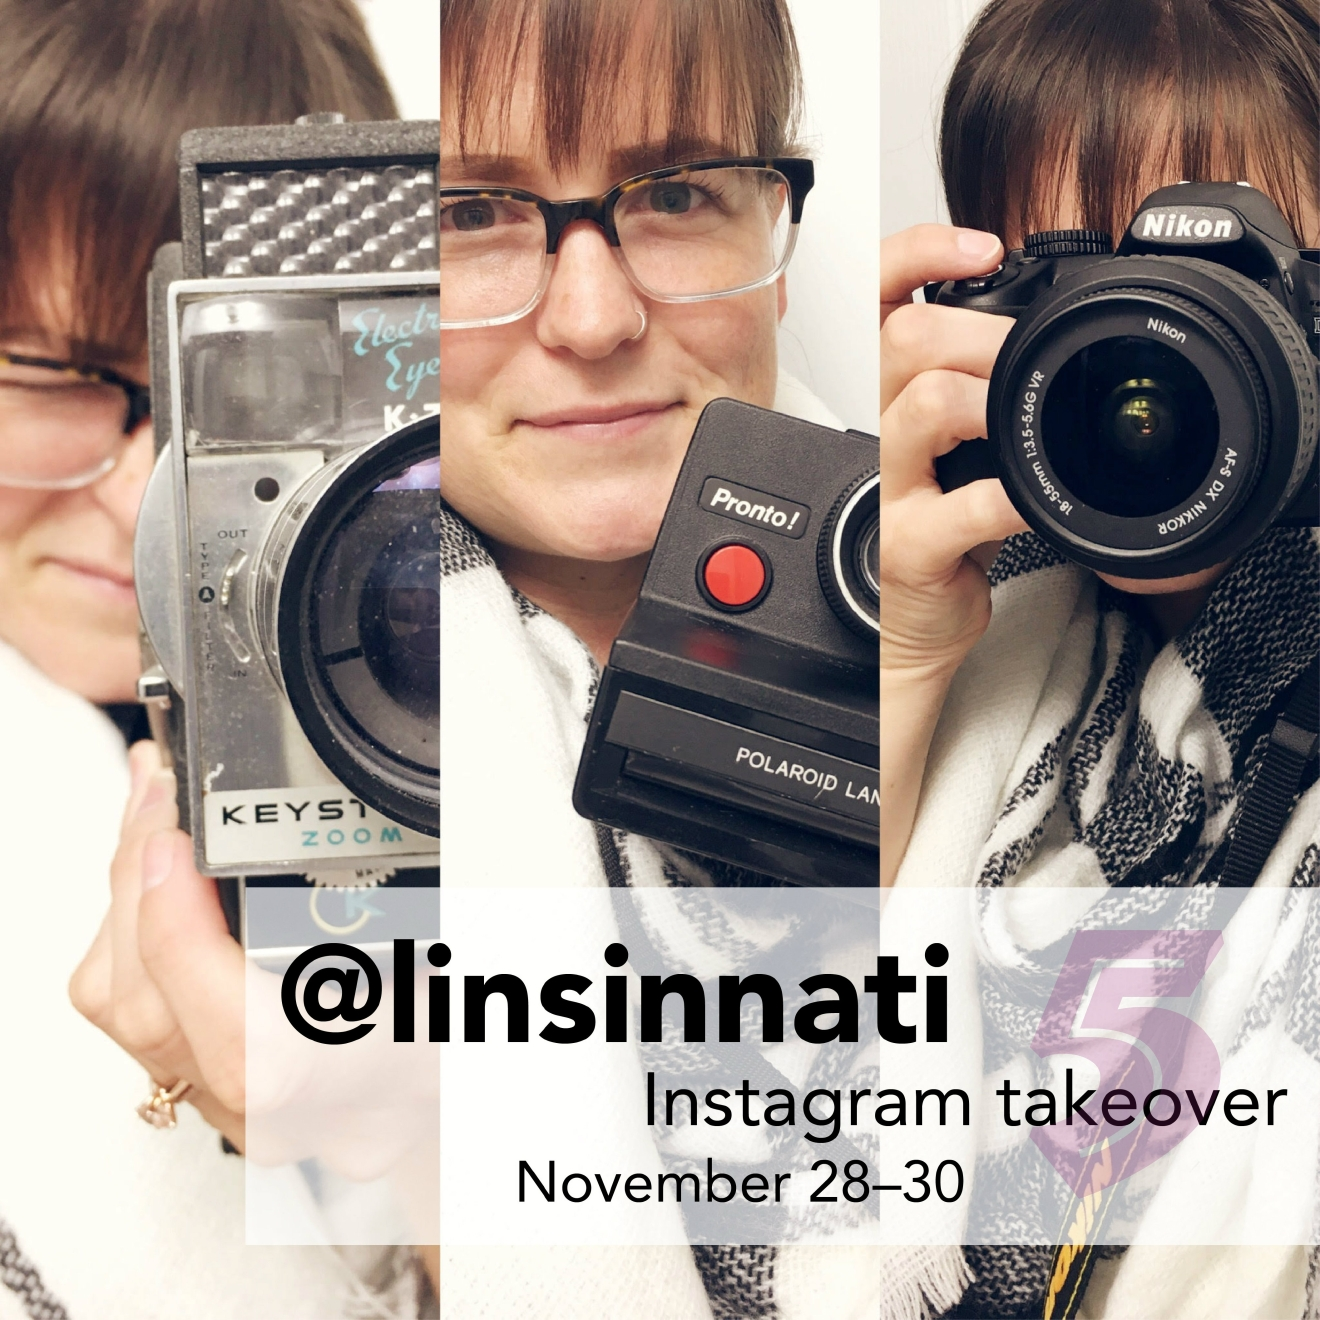 #5 - Oh snap... did you miss it? We're talking about the @linsinnati IG takeover of our account. You can still see her great pics if you visit us on IG @cincyrefined / Image courtesy of IG user @linsinnati